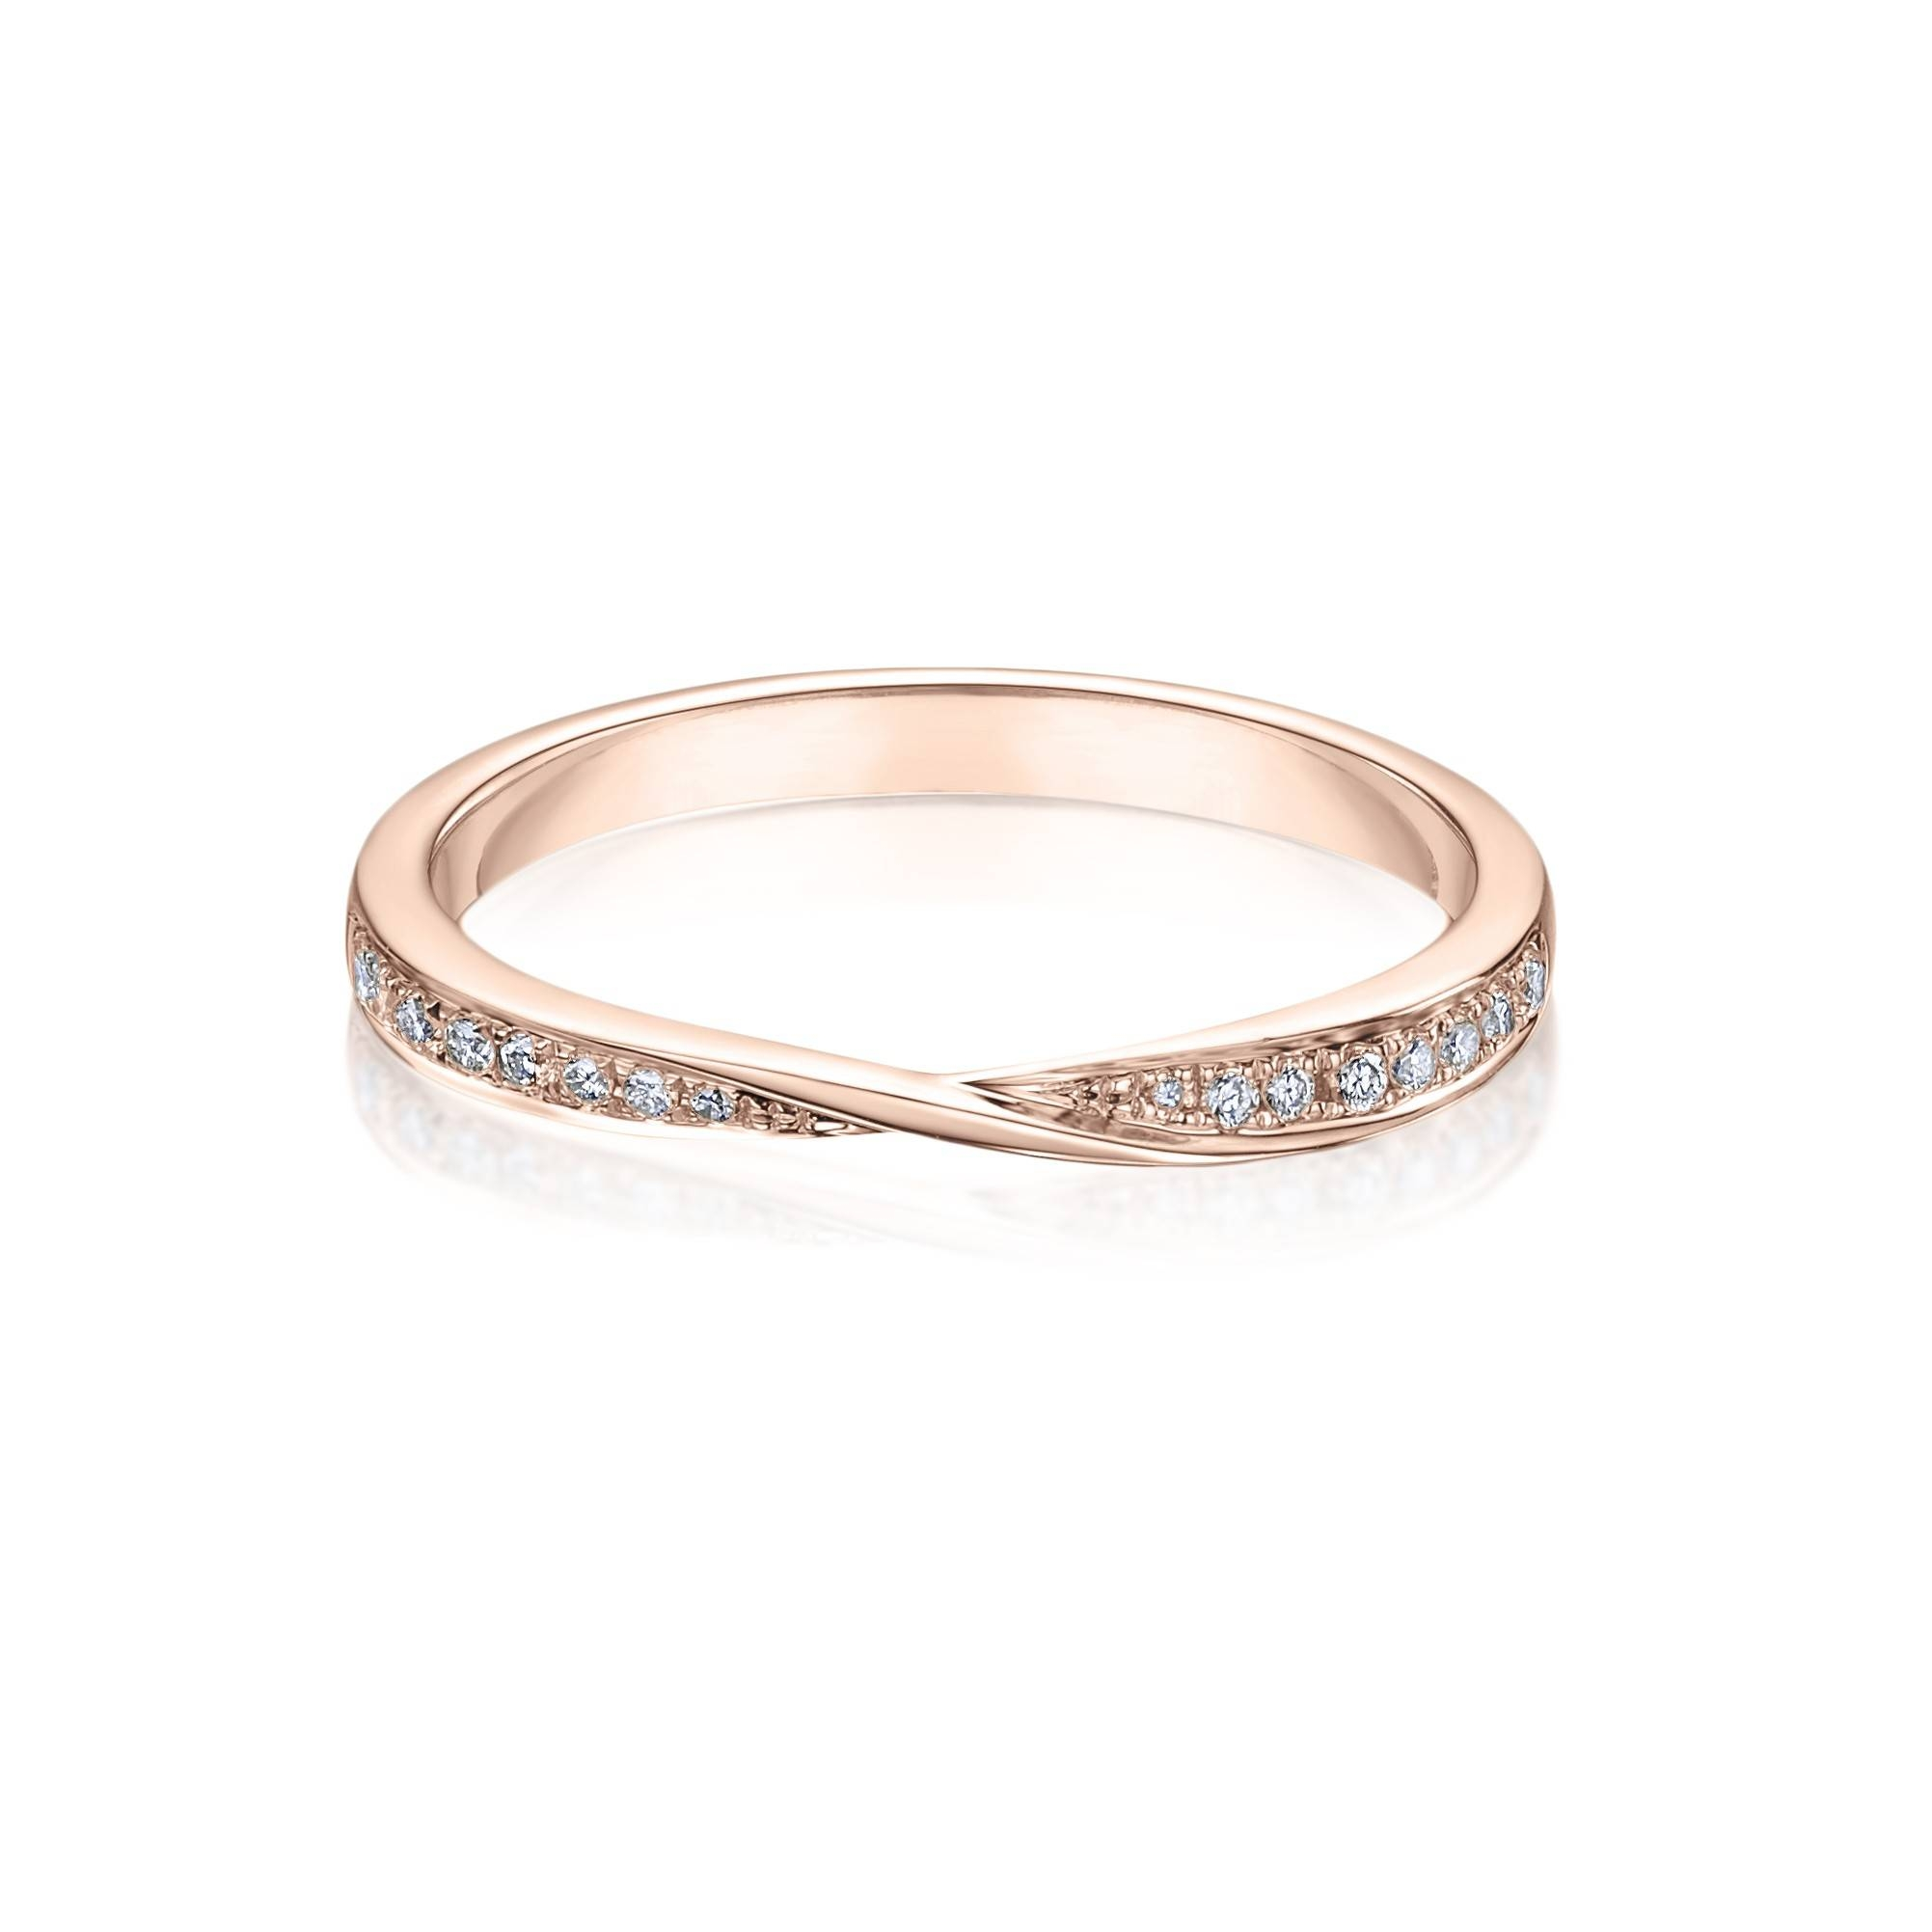 Esme Diamond Set 18Ct Rose Gold Wedding Band | Laing The Jeweller Inside Rose Gold Wedding Bands (View 5 of 15)